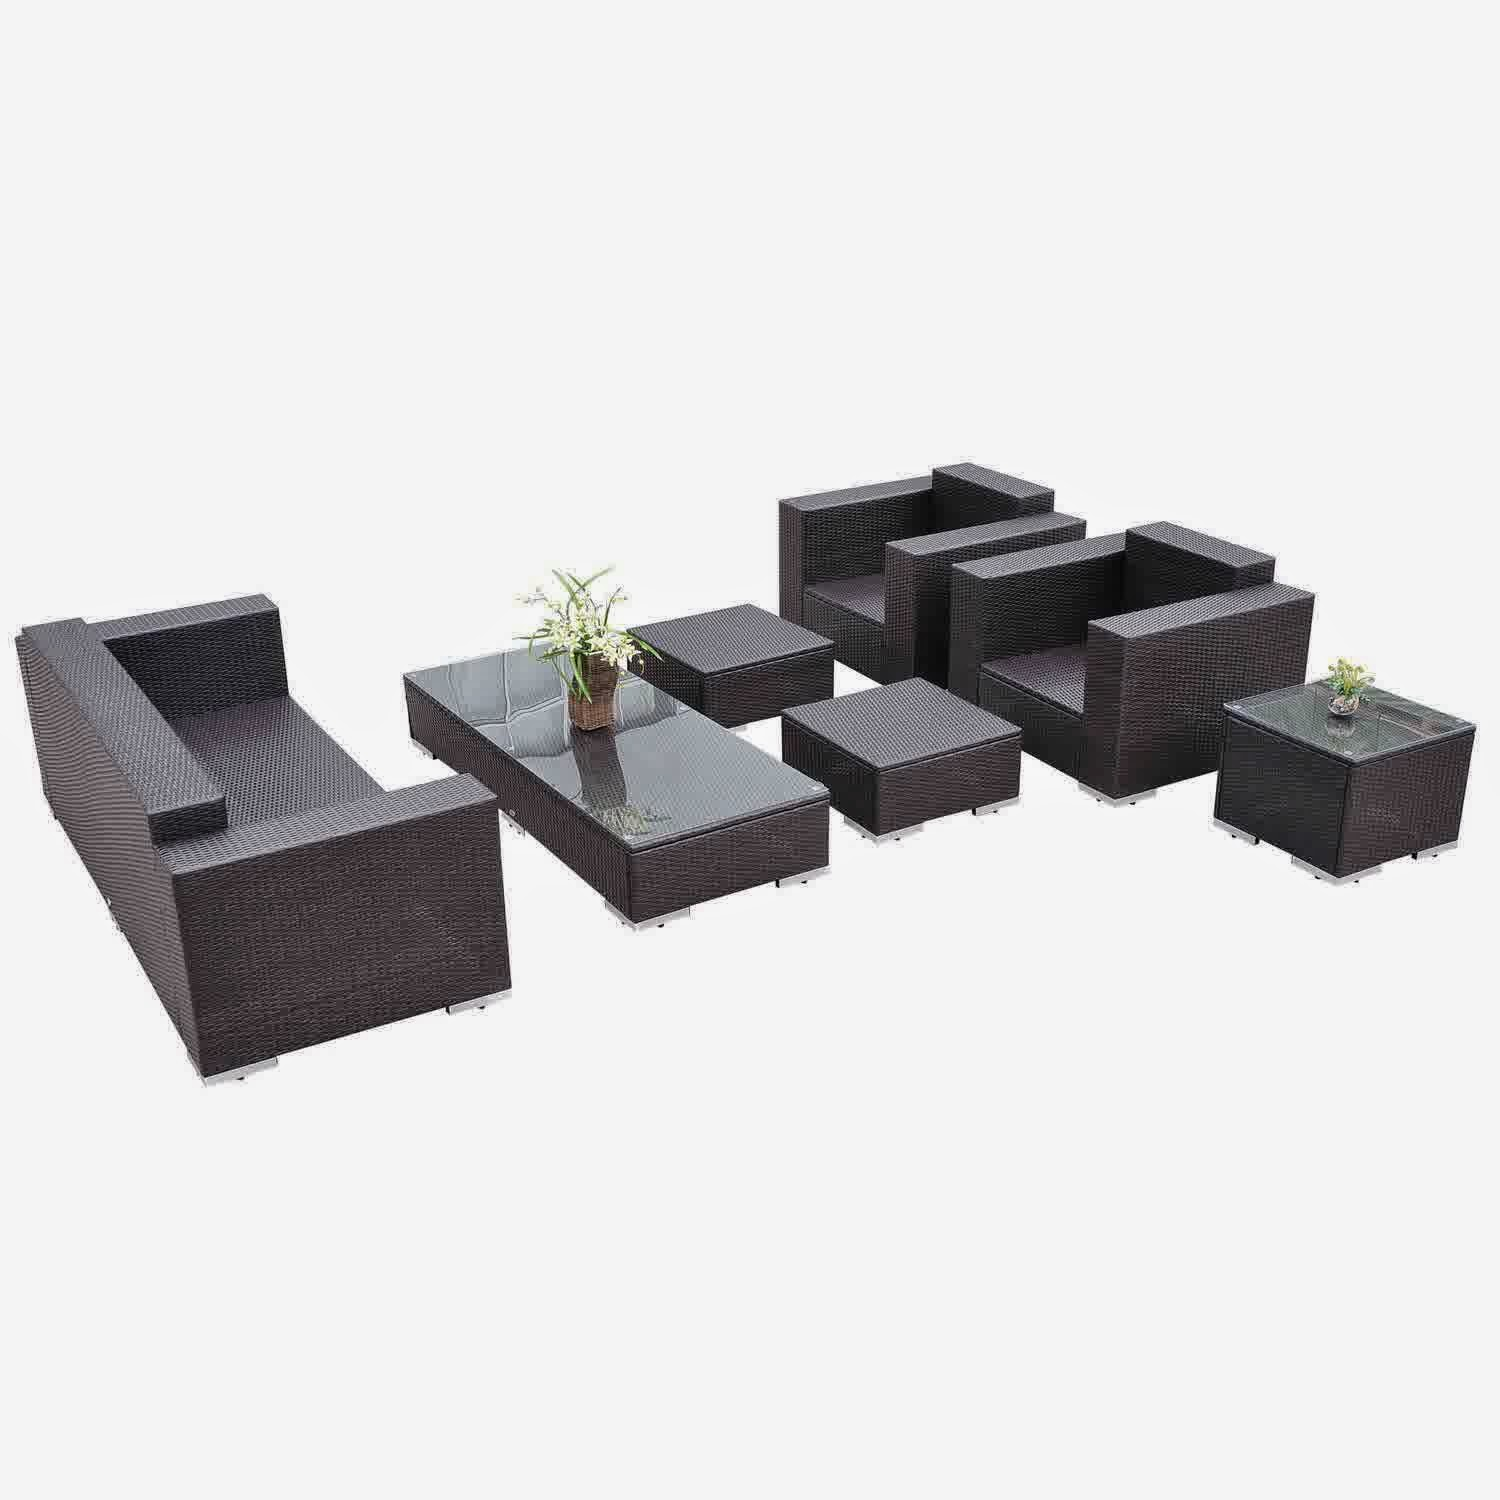 Outdoor Rattan Wicker Sofa Sectional Patio Furniture Set Reclining Loveseat With Sleeper Outsunny 7pc Pe